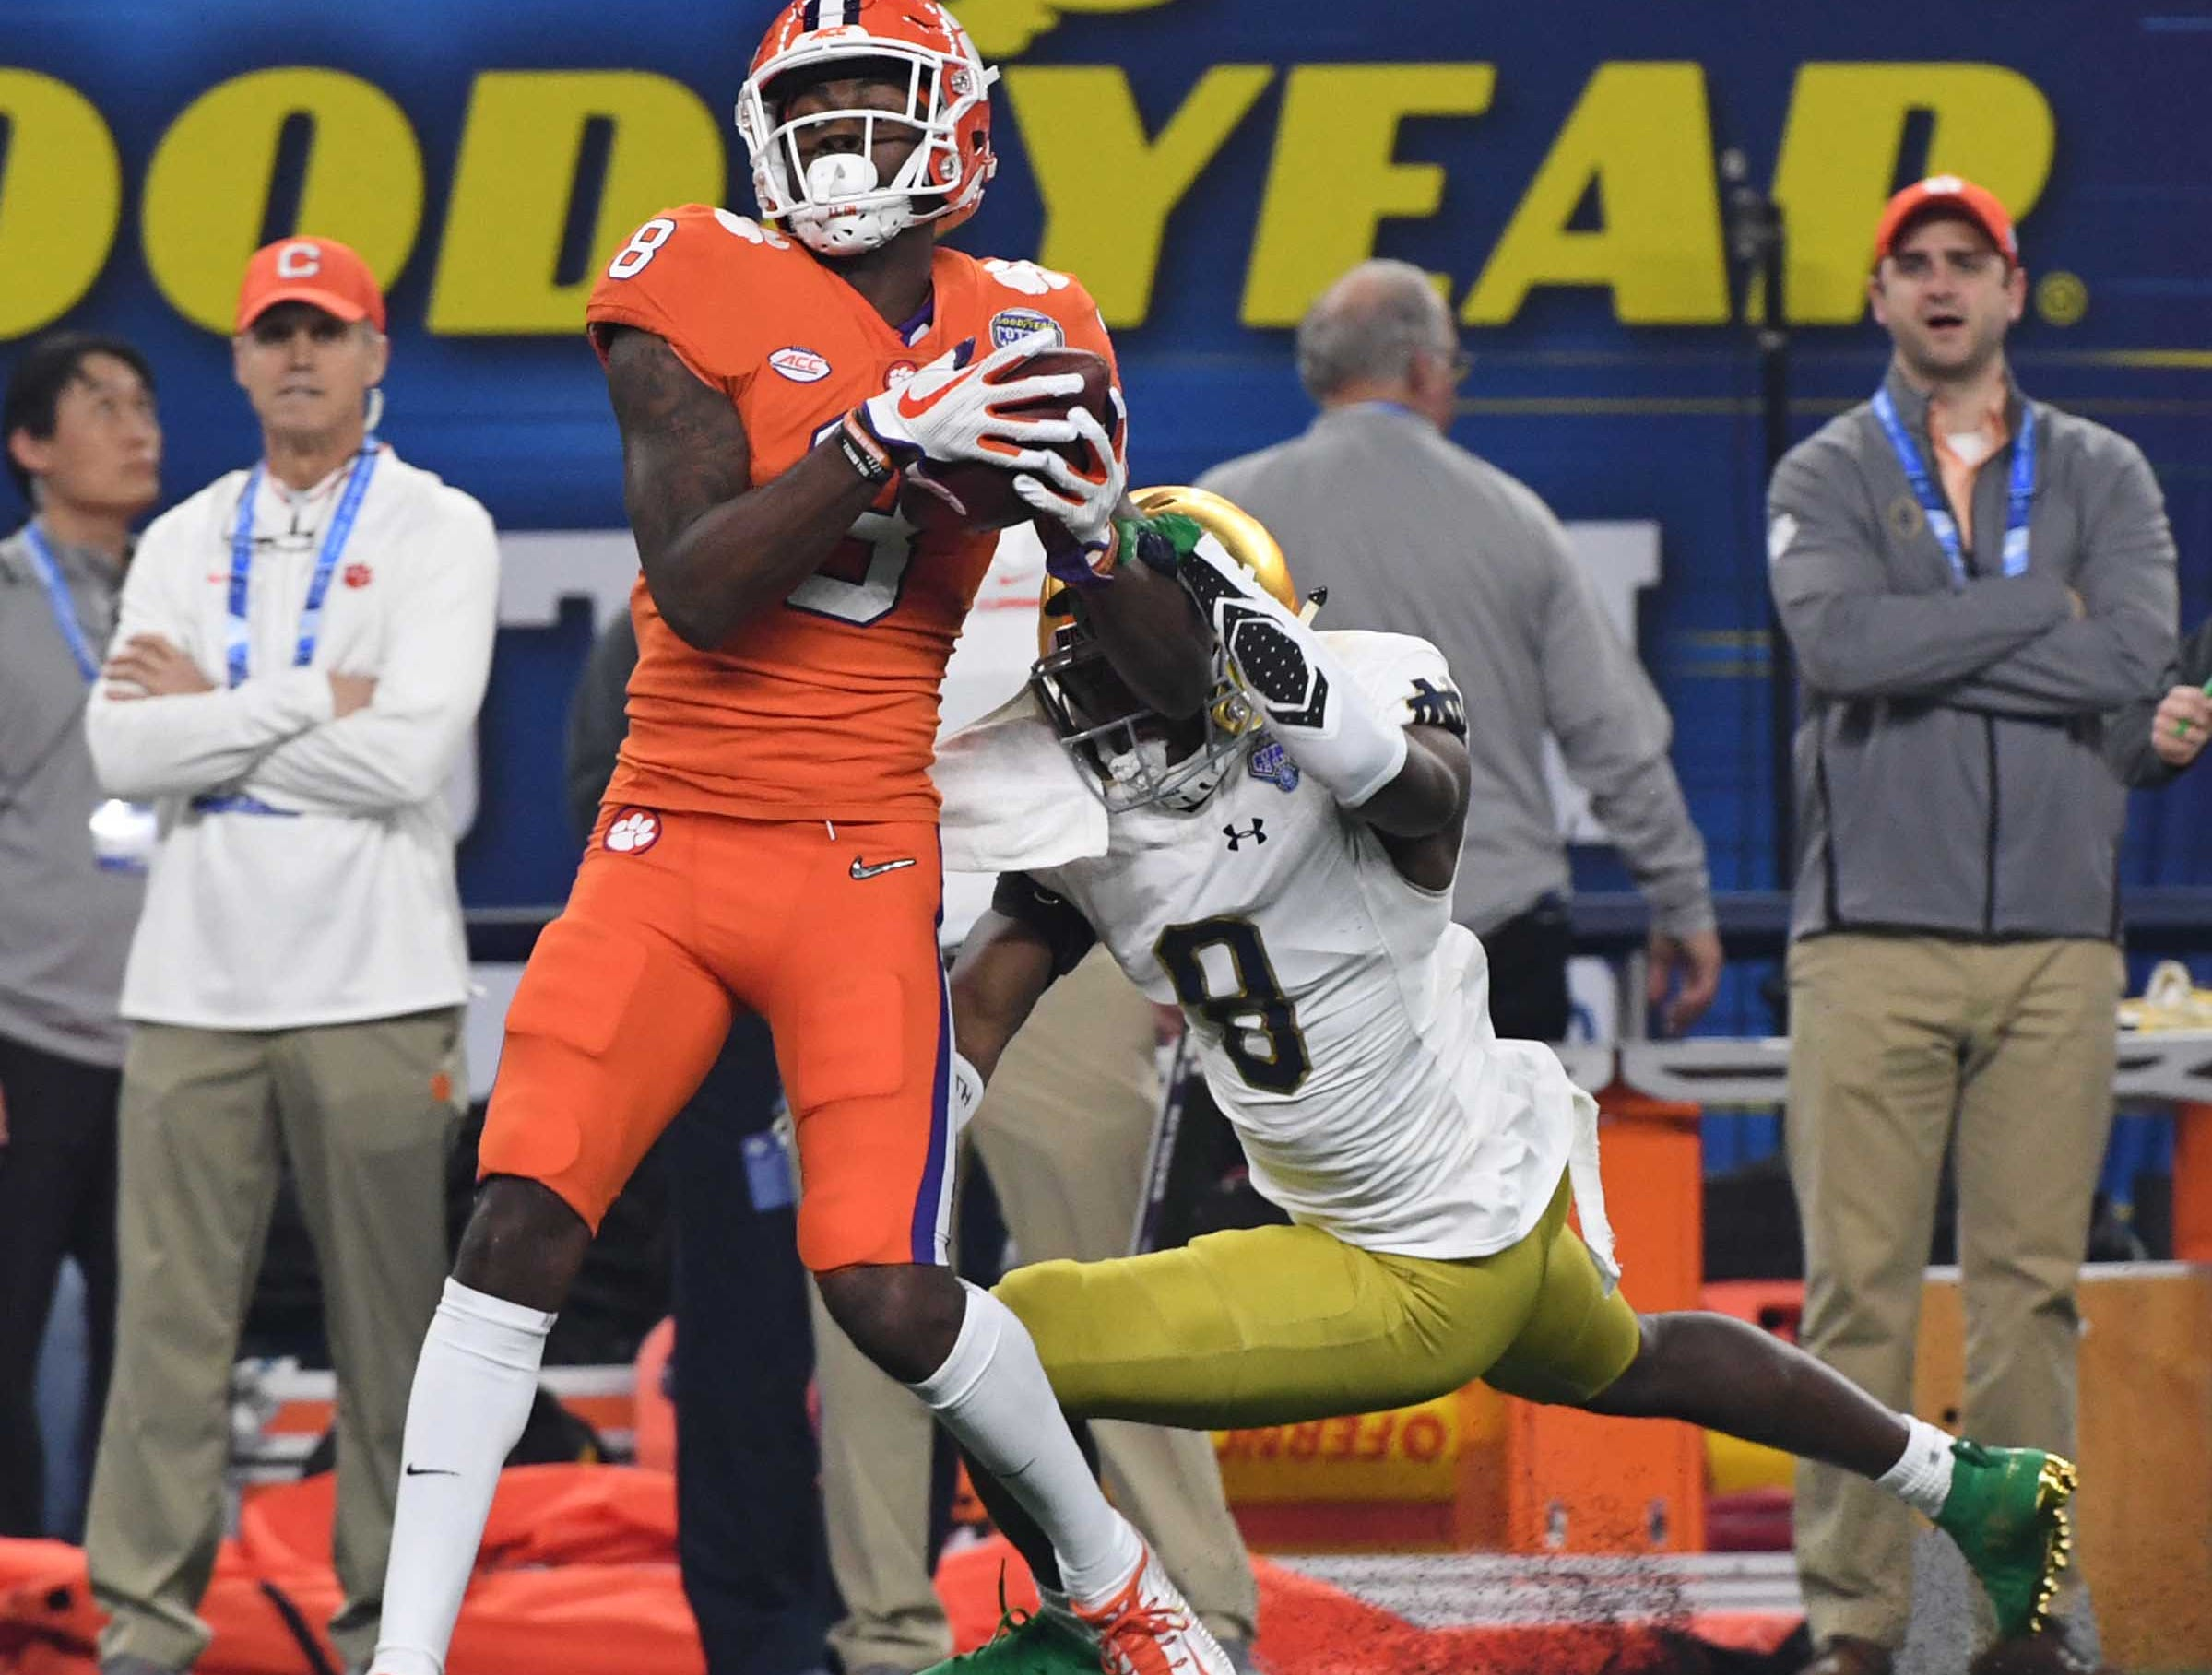 Clemson wide receiver Justyn Ross (8) catches a ball near Notre Dame cornerback Donte Vaughn (8) for a 52-yard touchdown during the first quarter of the College Football Playoff Semifinal at the Goodyear Cotton Bowl Classic at AT&T Stadium in Arlington, Texas Saturday, December 29, 2018.